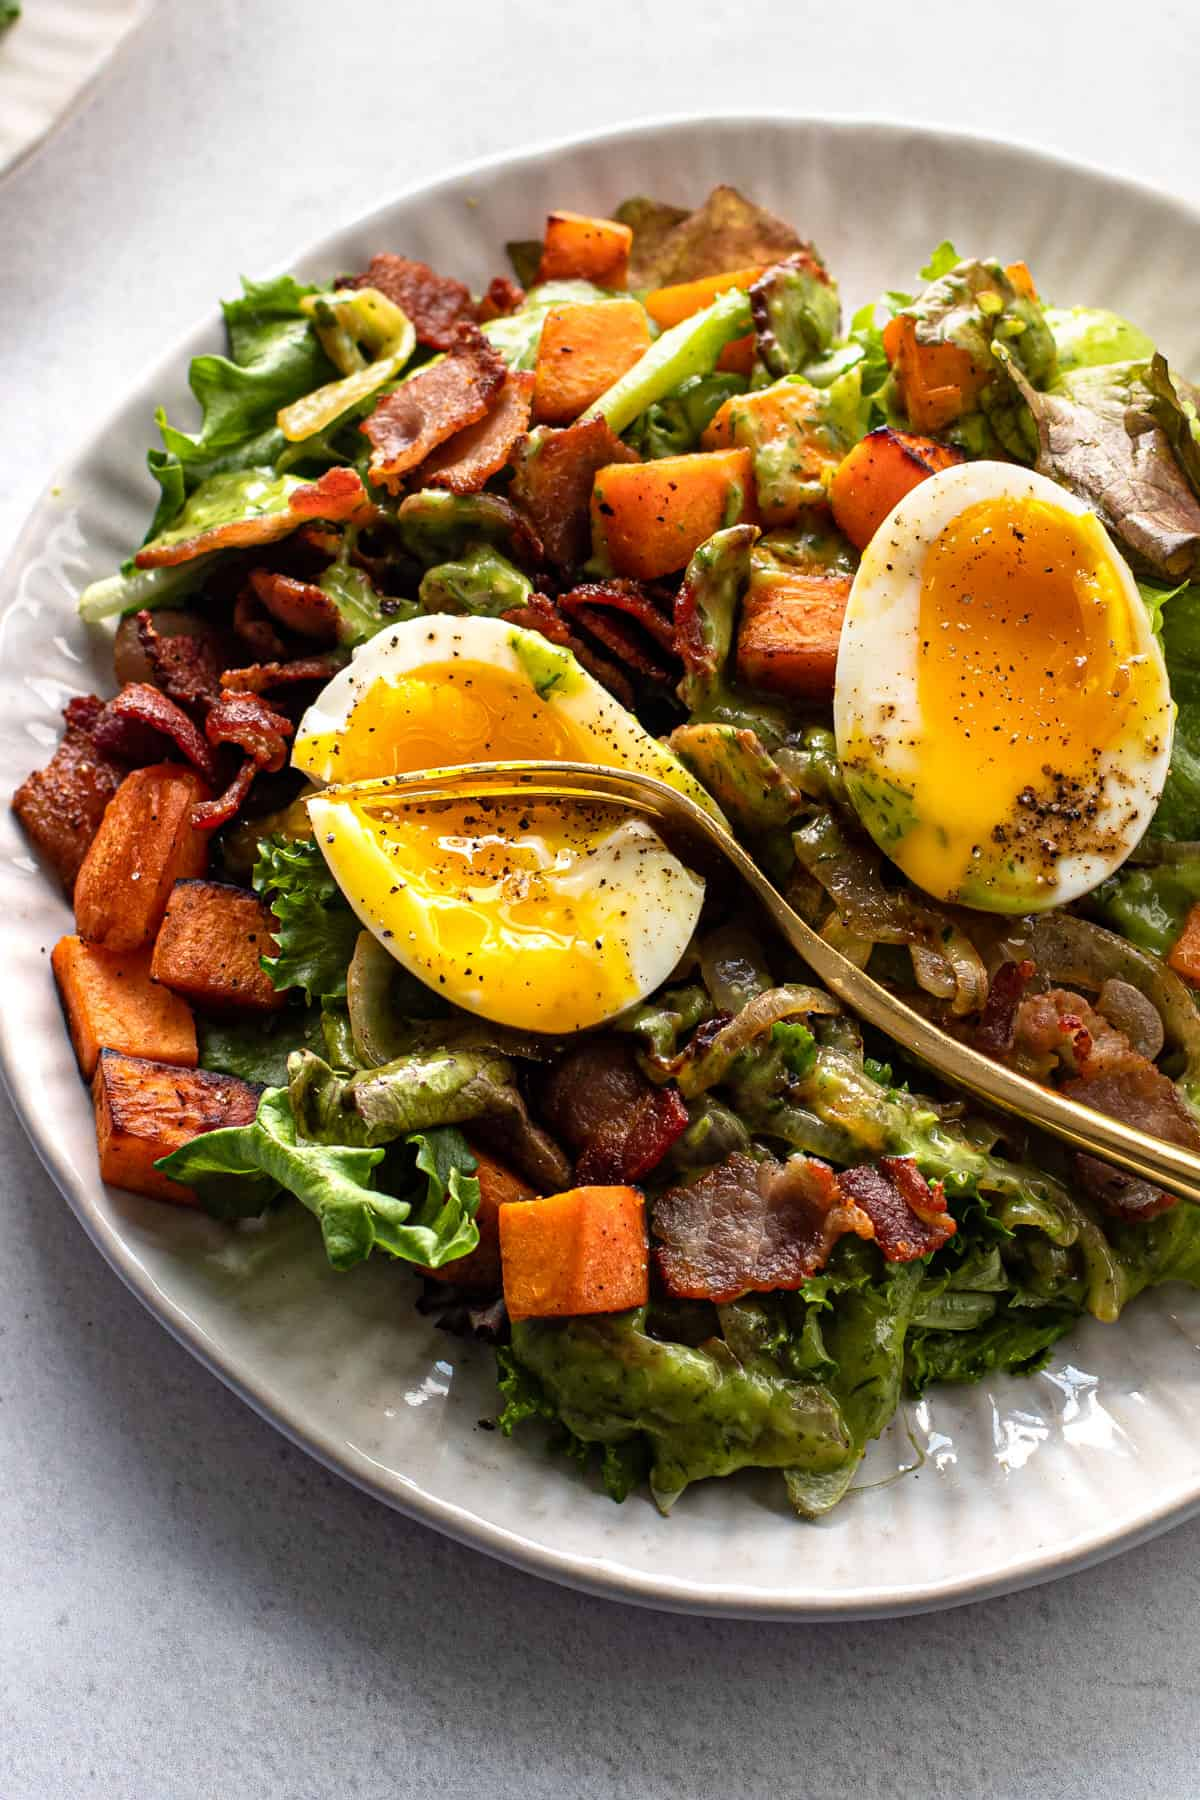 Breakfast salad on a plate topped with a soft-boiled egg.